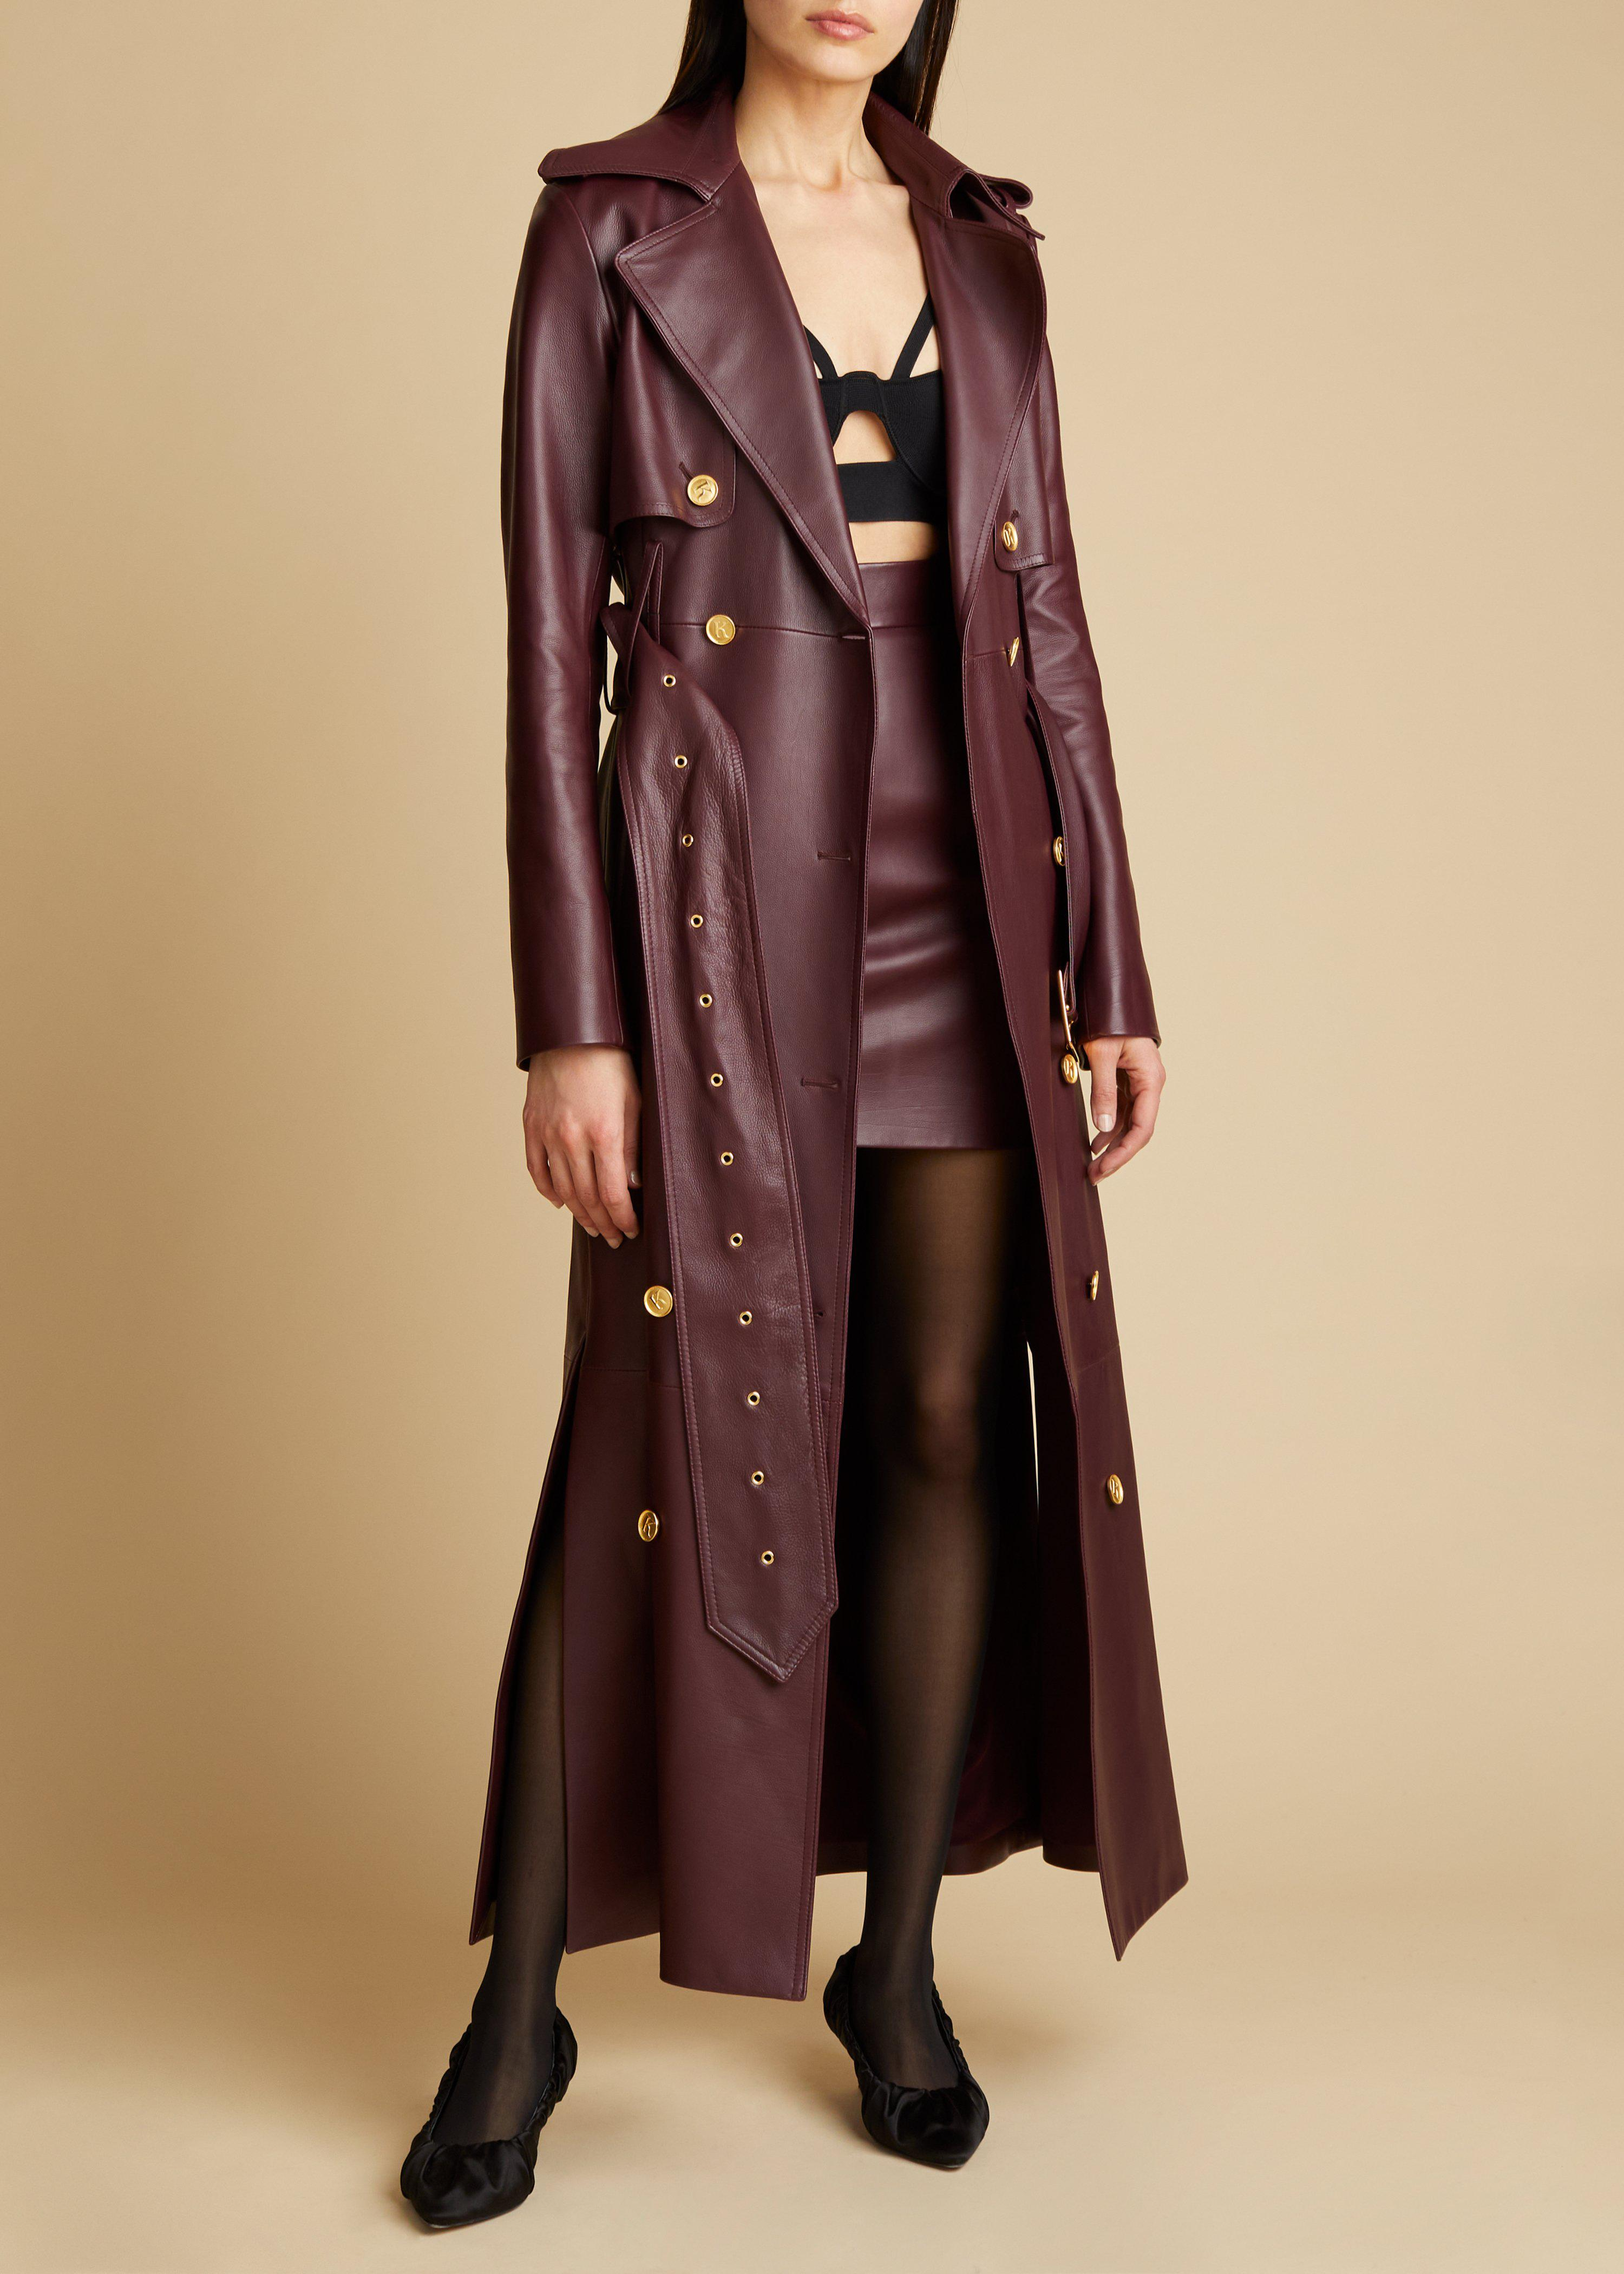 The Eiko Skirt in Bordeaux Leather